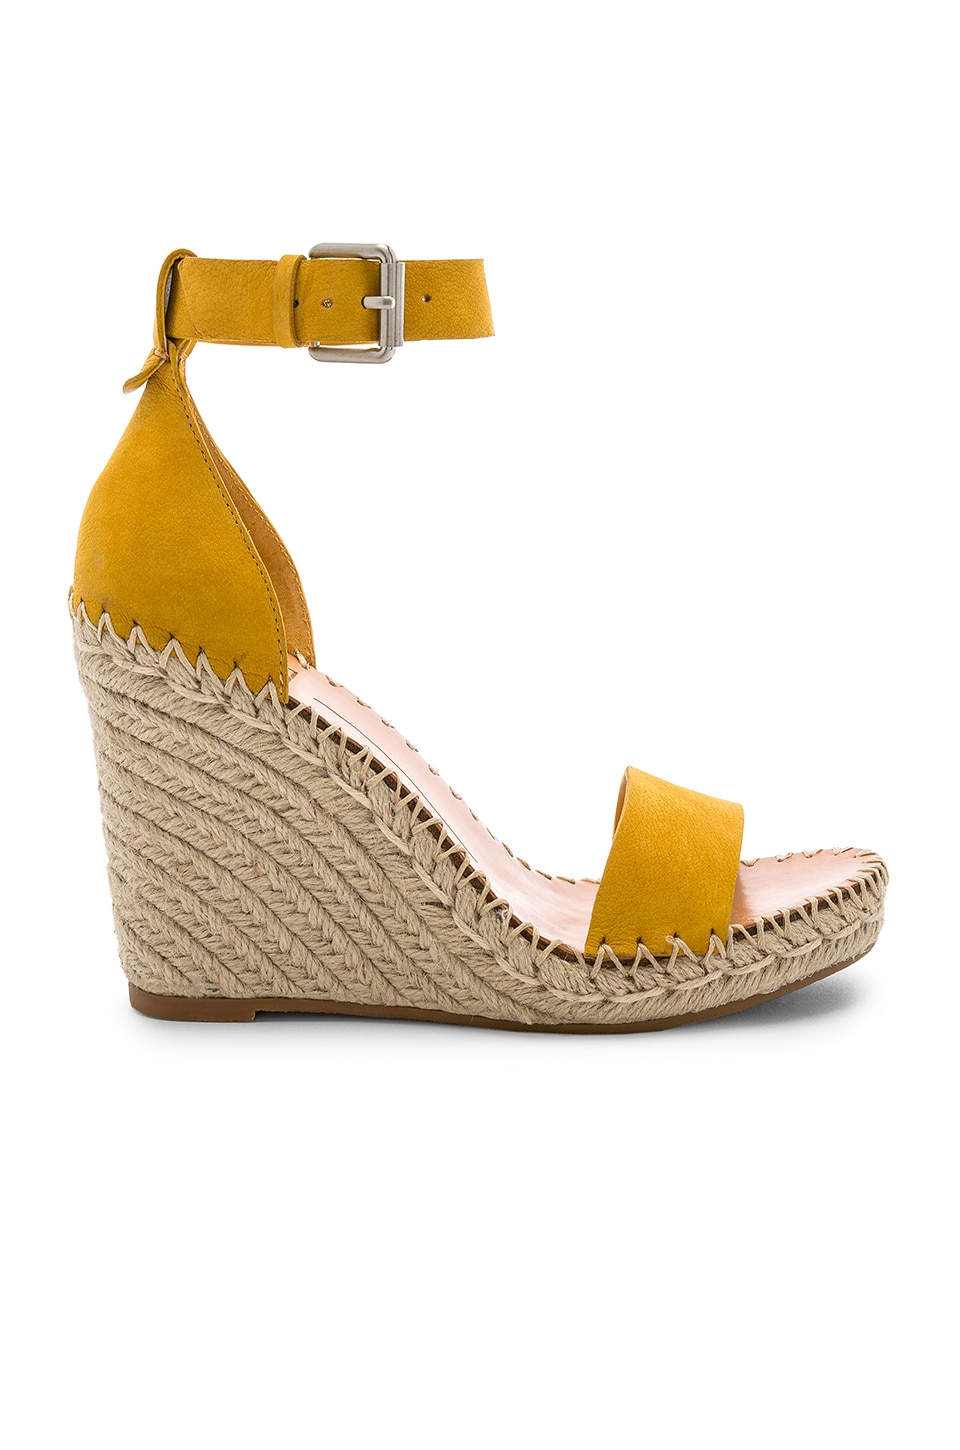 Dolce Vita Noor Sandal in Honey